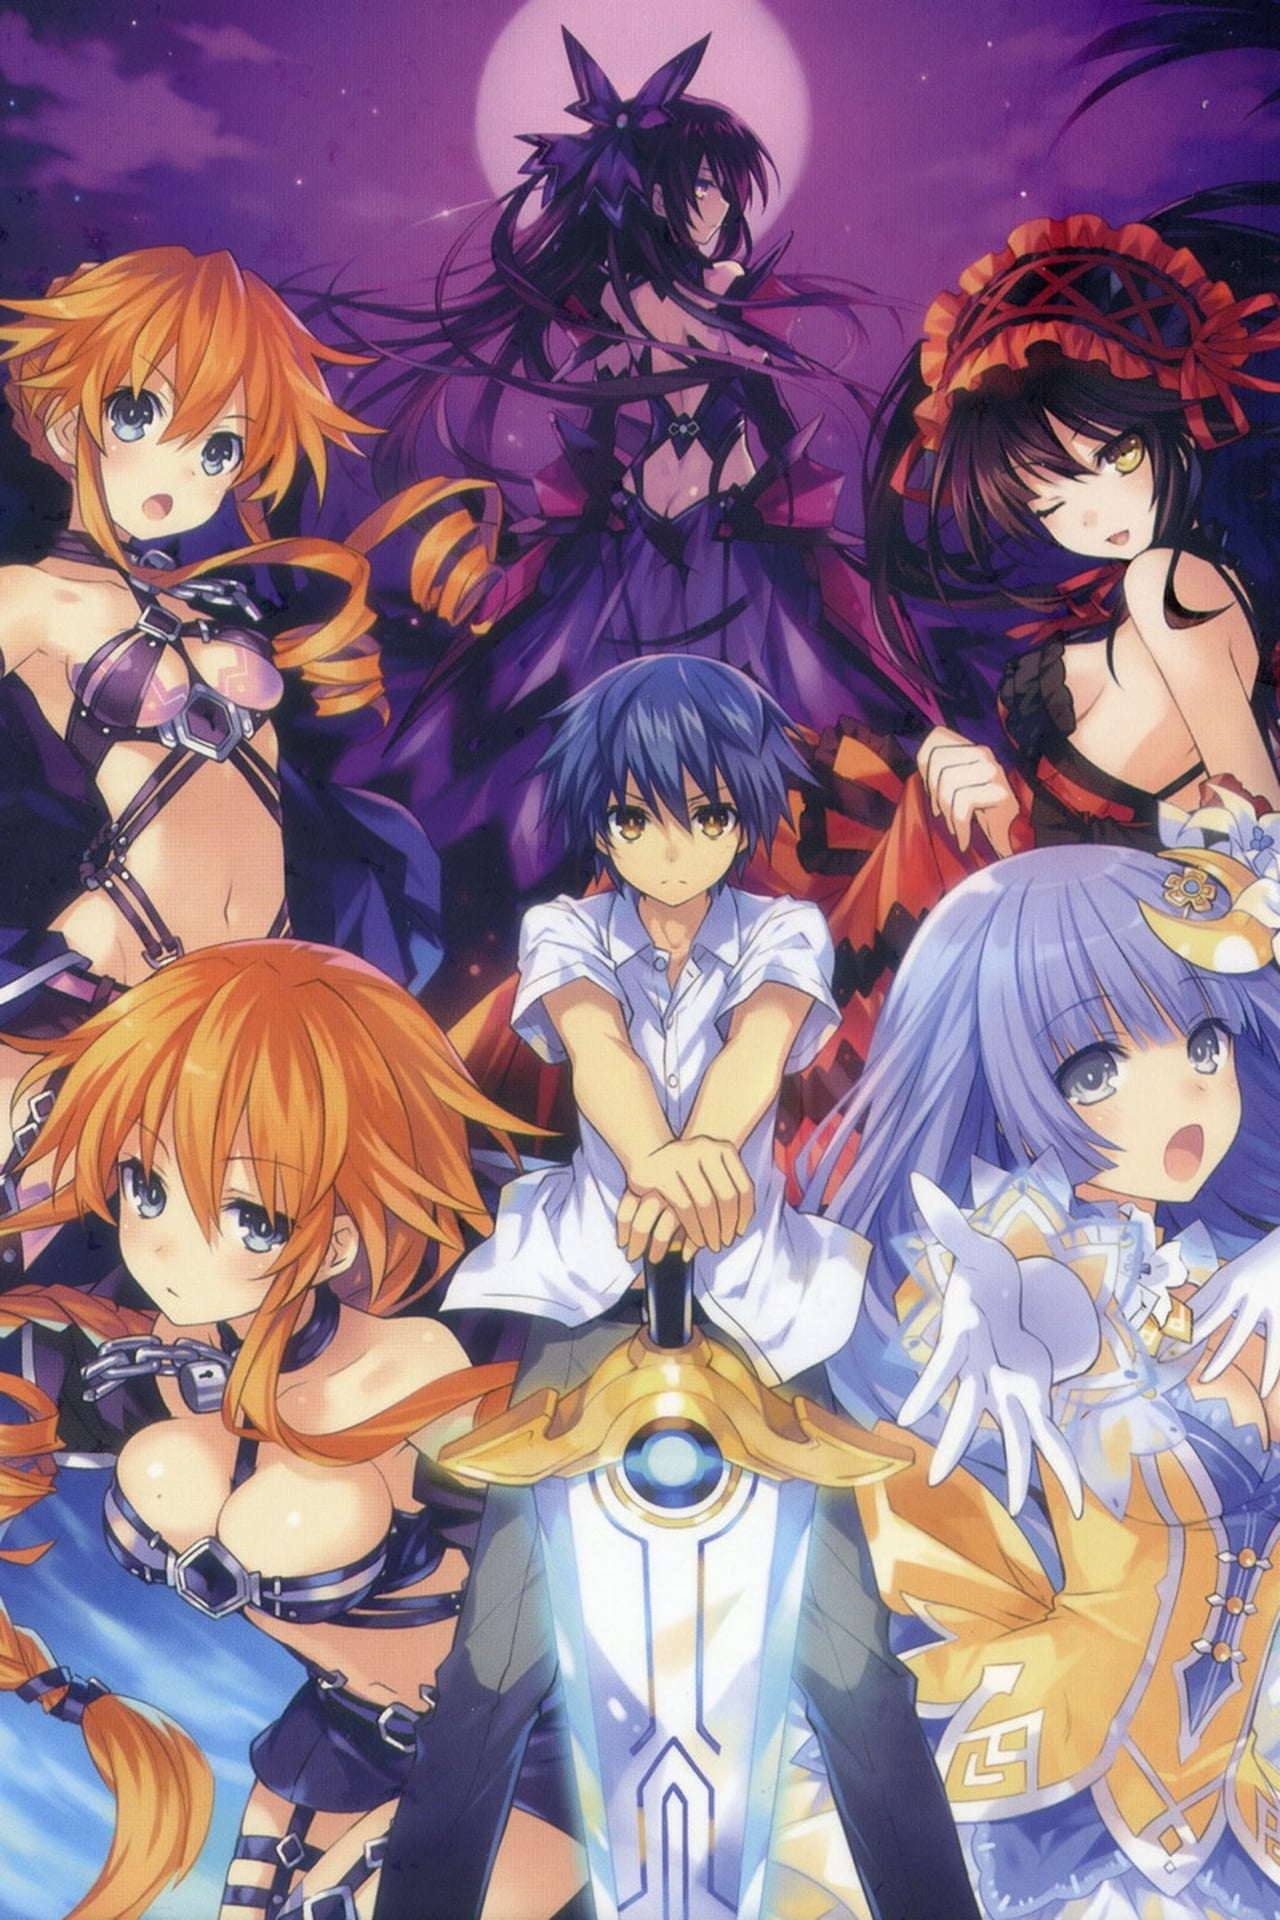 Watch Date A Live Season 2 Online